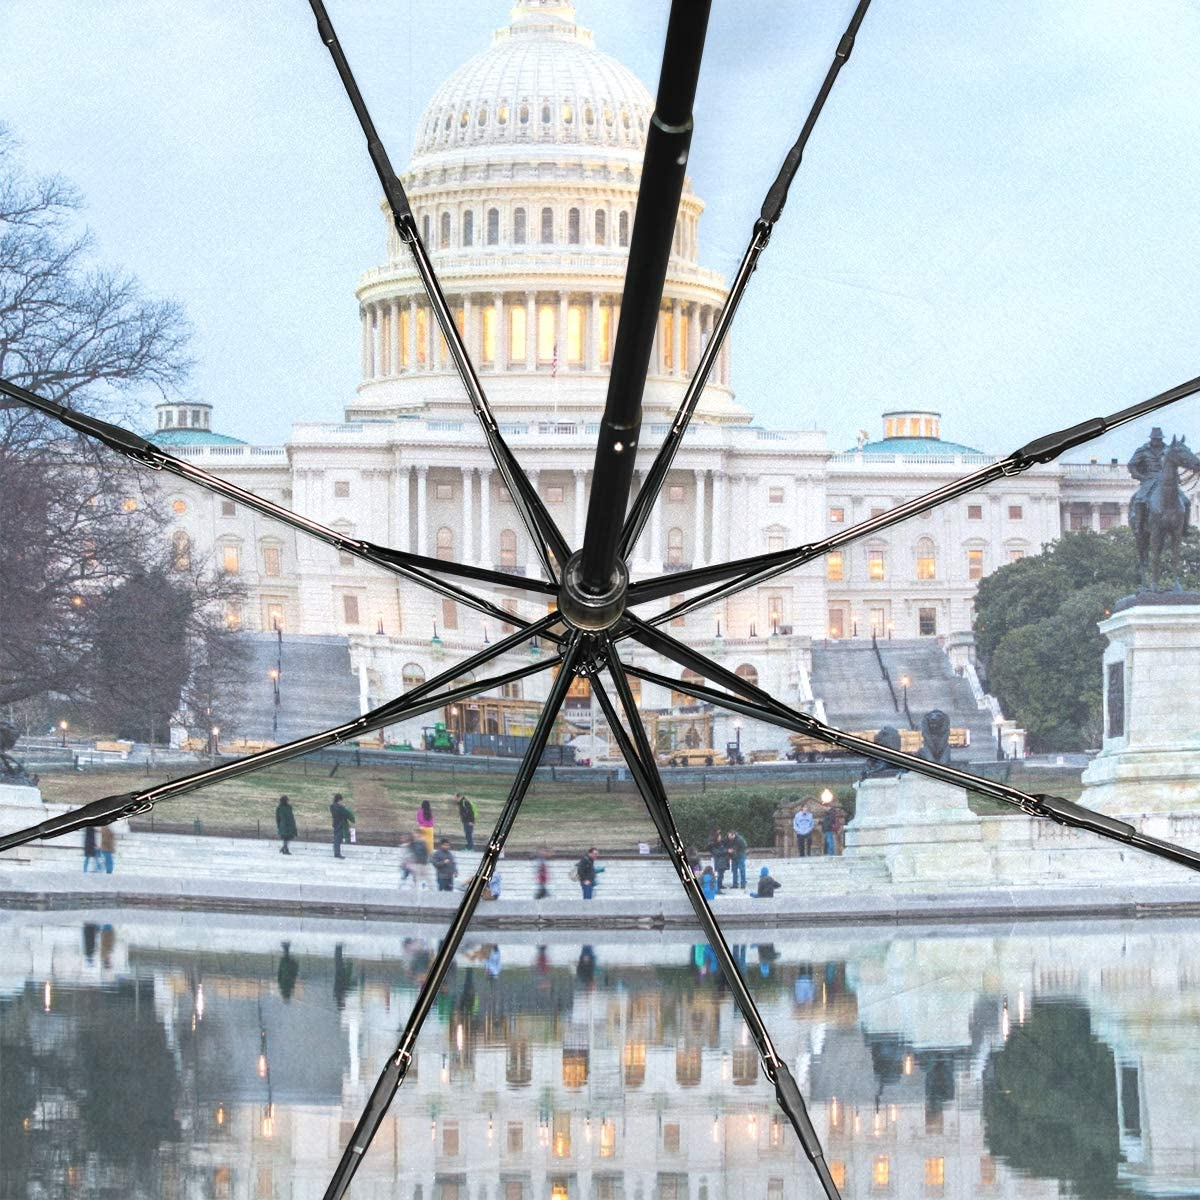 Inverted Umbrella Windproof Capitol Building At Night In District Of Columbia Portable Compact Folding Umbrella Anti Uv Protection Windproof Outdoor Travel Women Mens Inverted Umbrella